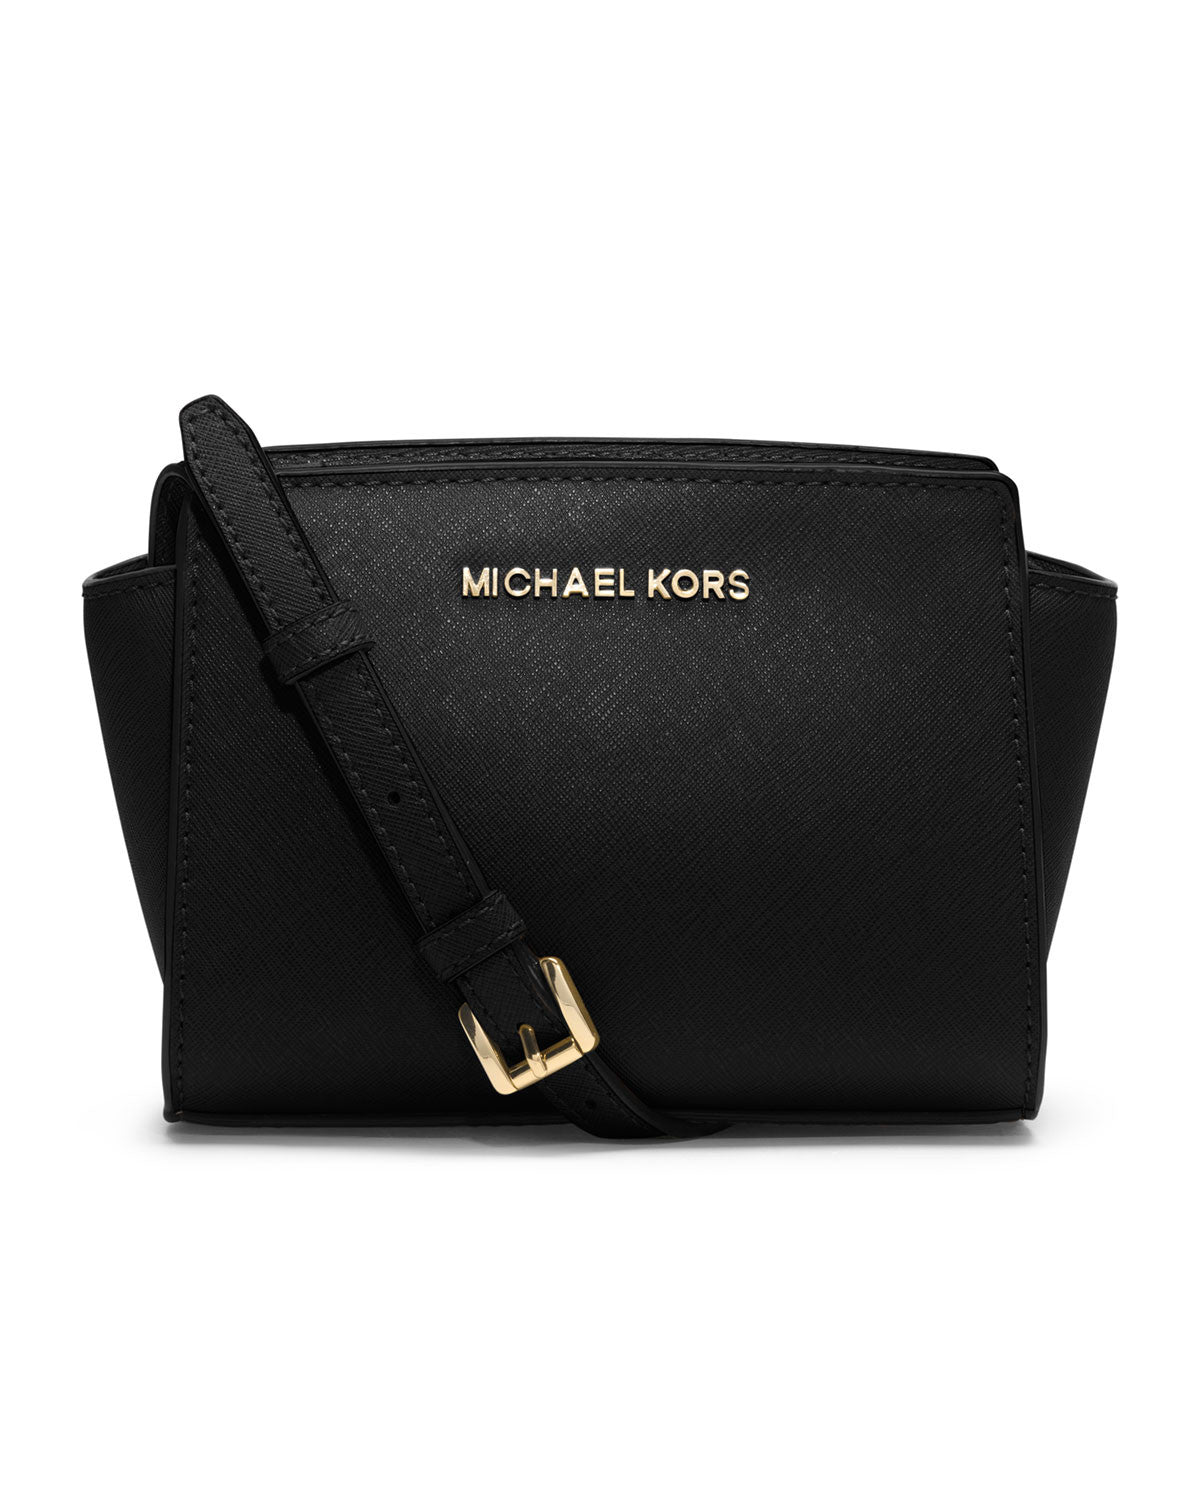 8611a923a30177 michael-kors-black-michael -mini-selma-messenger-product-1-20138362-0-547911657-normal.jpeg?v=1510177137